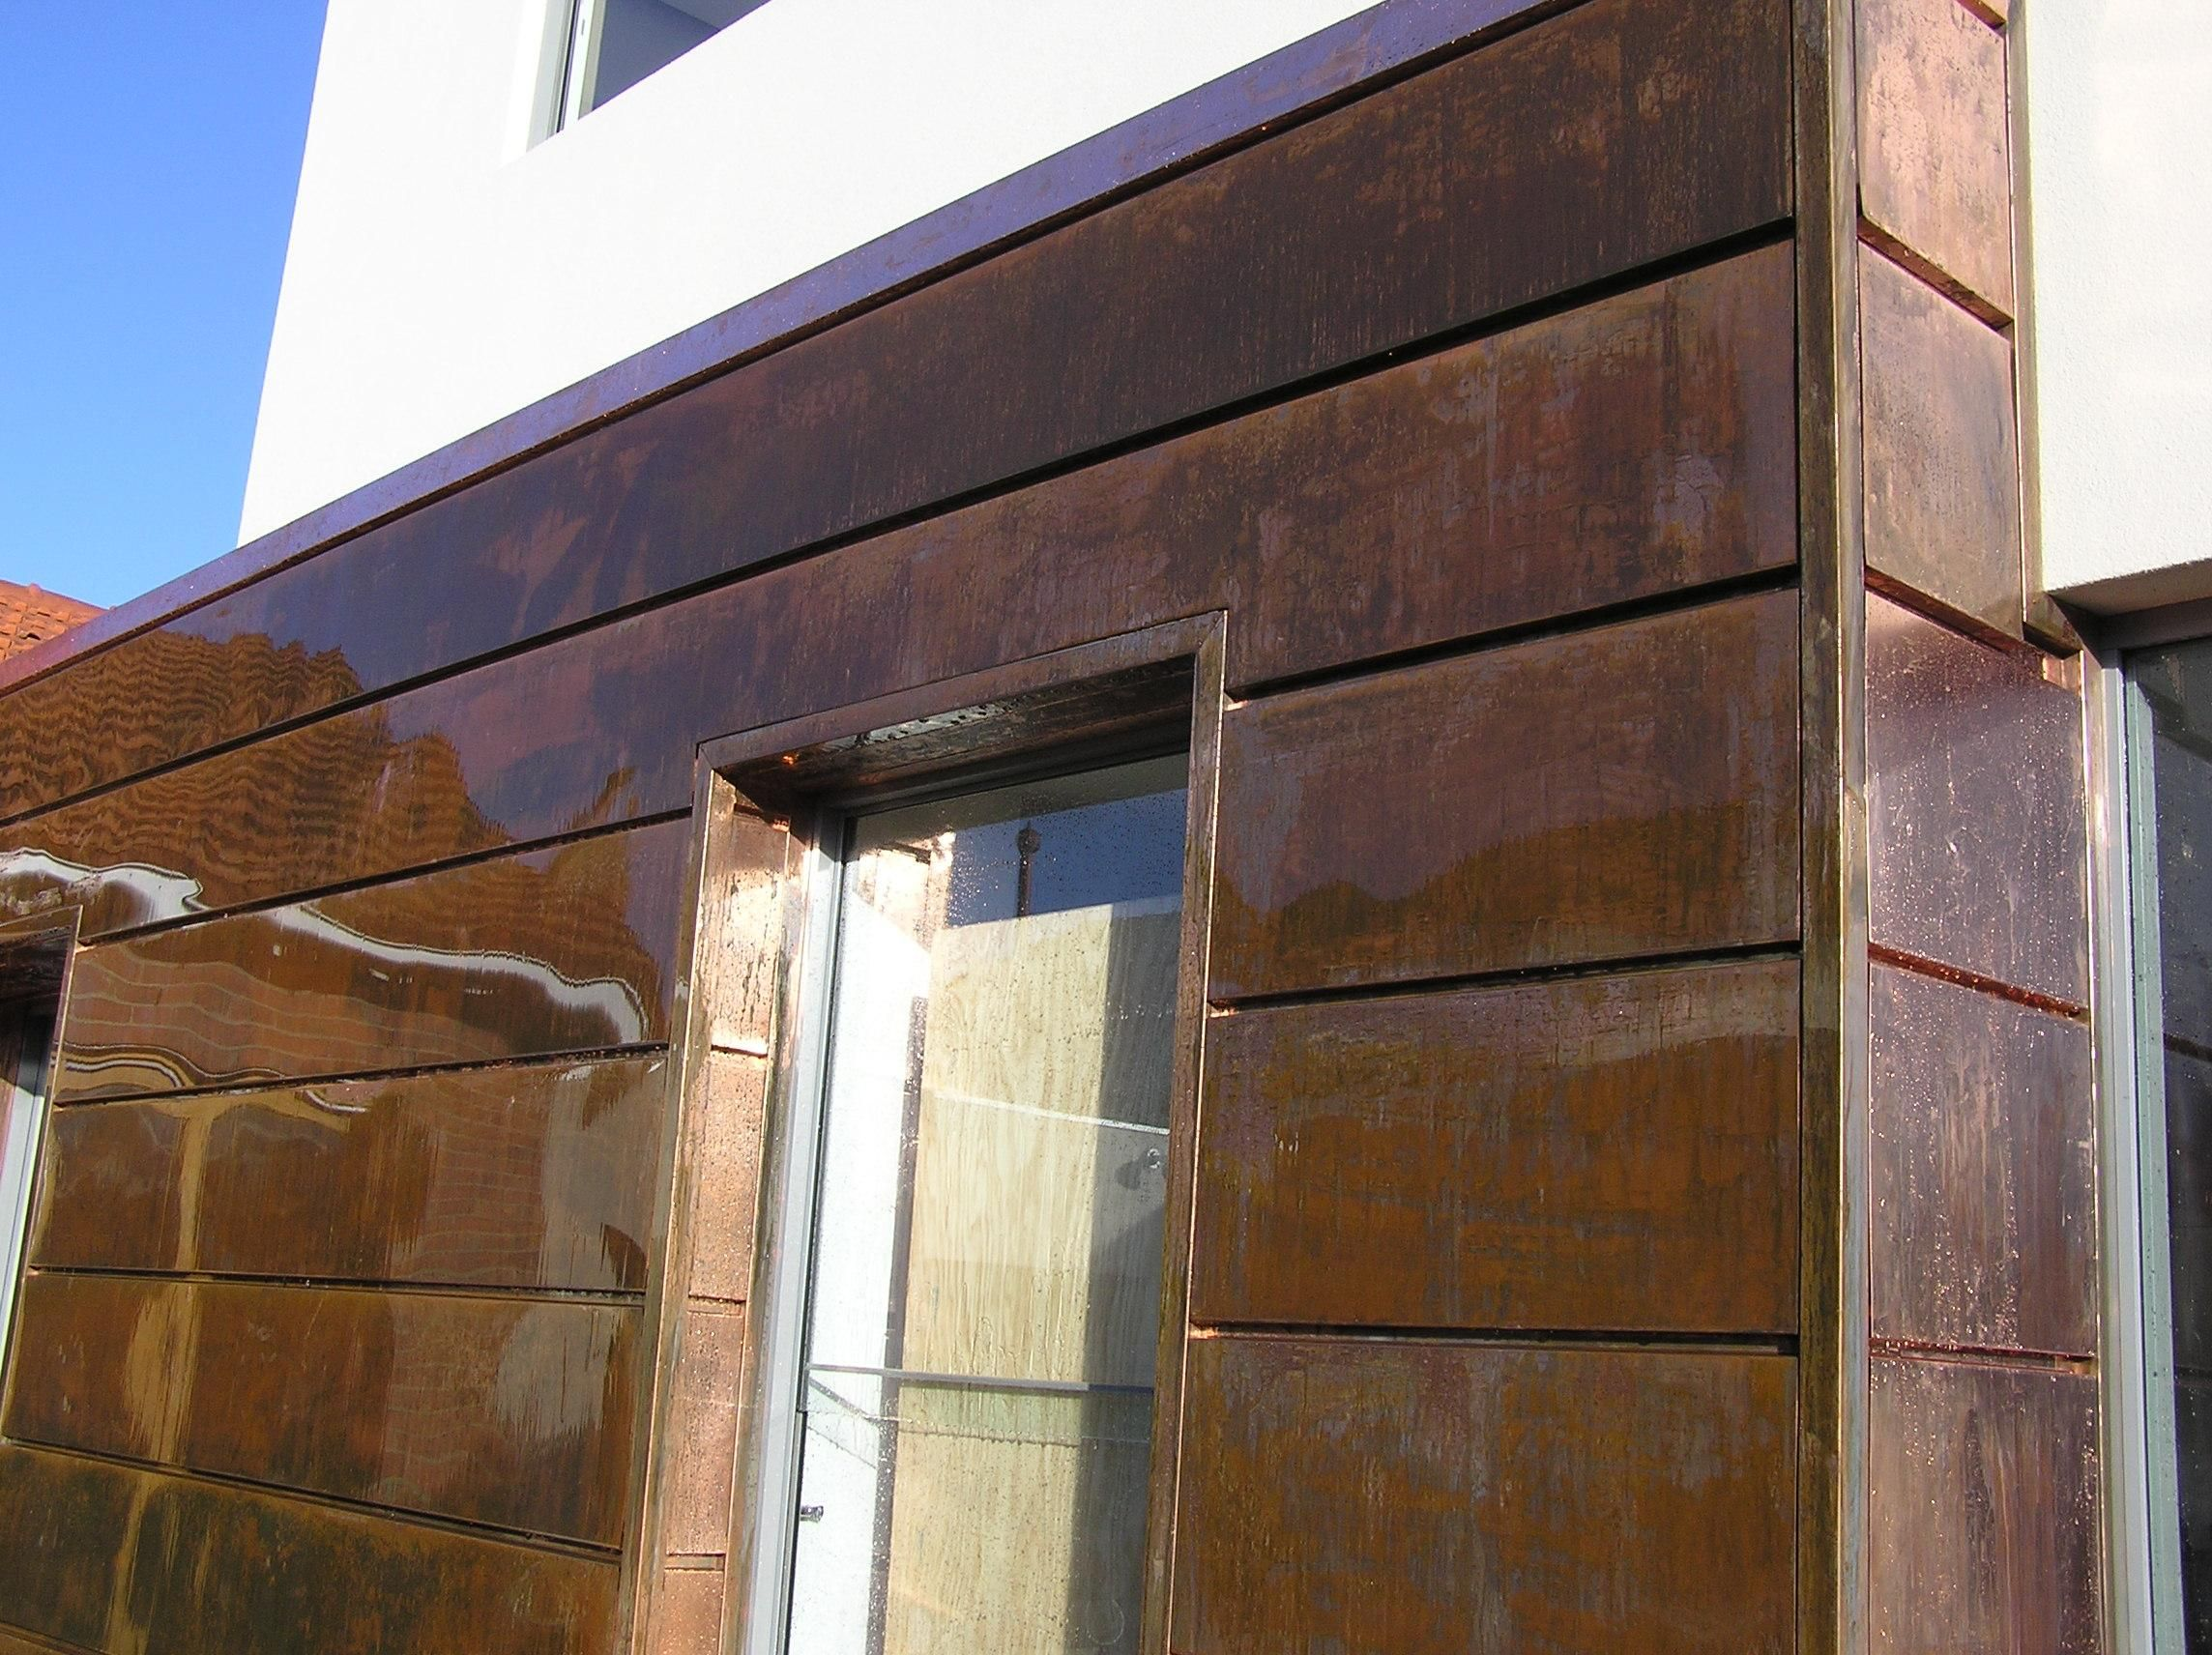 Copper panel images google search shutters cladding - Exterior materials for buildings ...